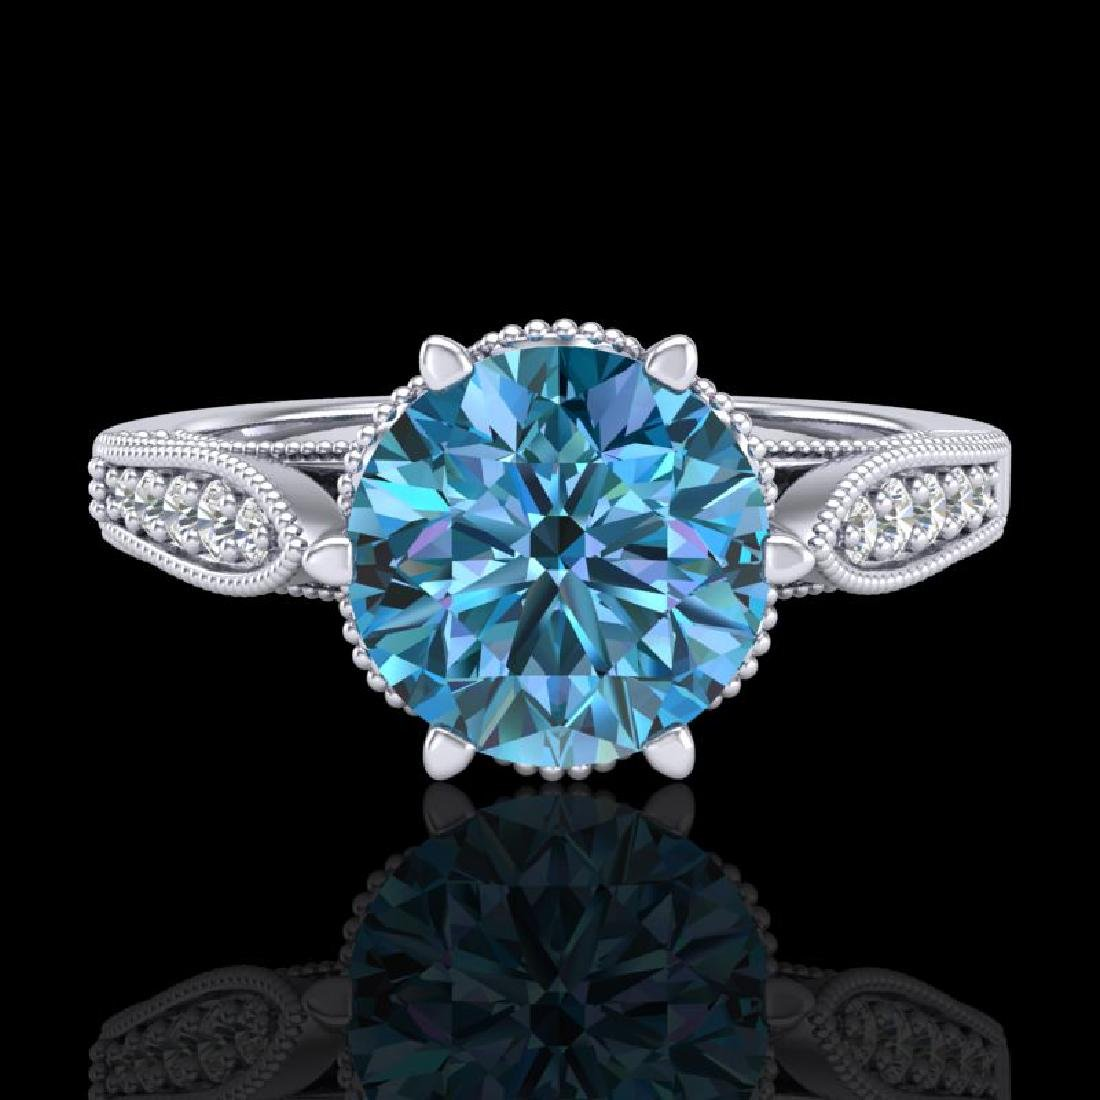 2.2 CTW Intense Blue Diamond Solitaire Engagement Art - 2